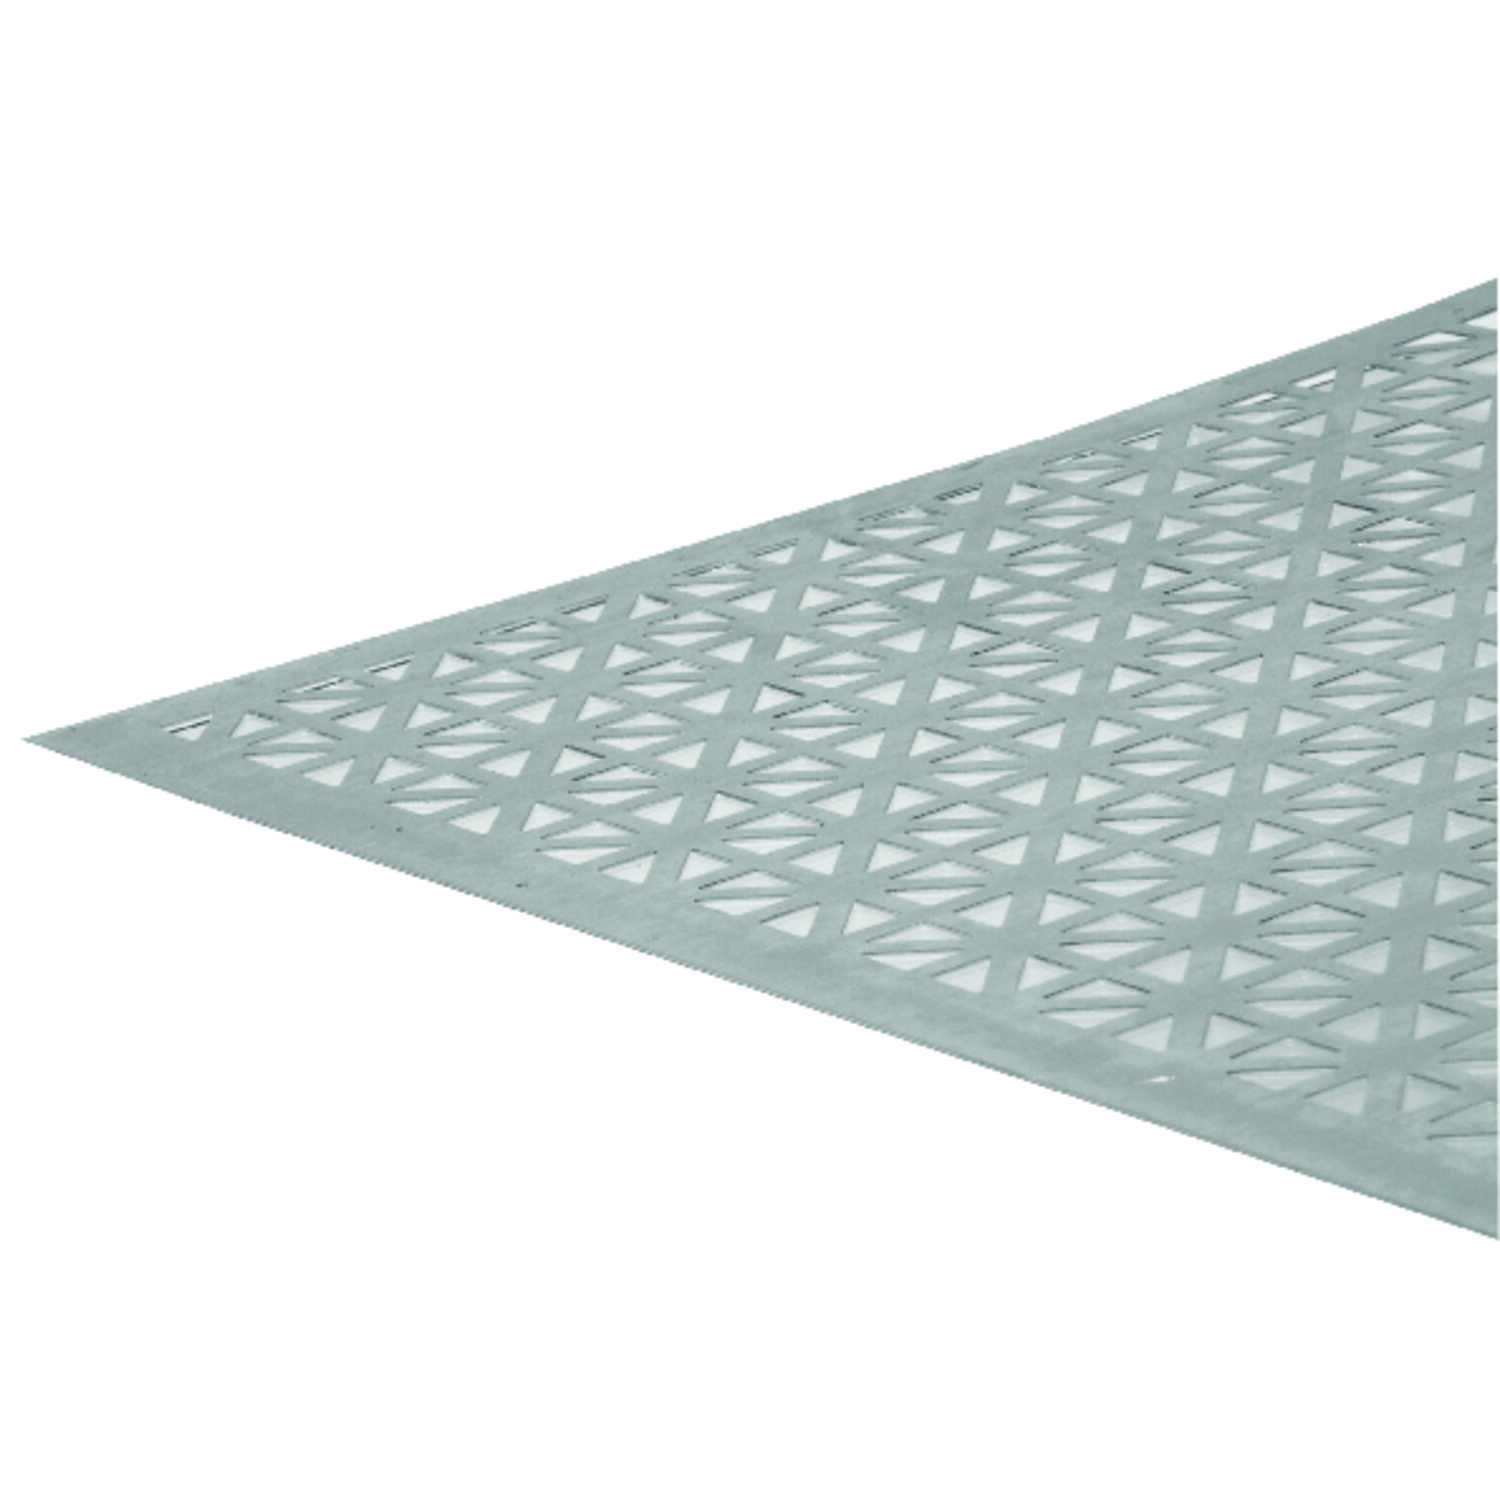 Boltmaster  0.02 in.  x 24 in. W x 36 in. L Mill  Aluminum  Union Jack  Sheet Metal